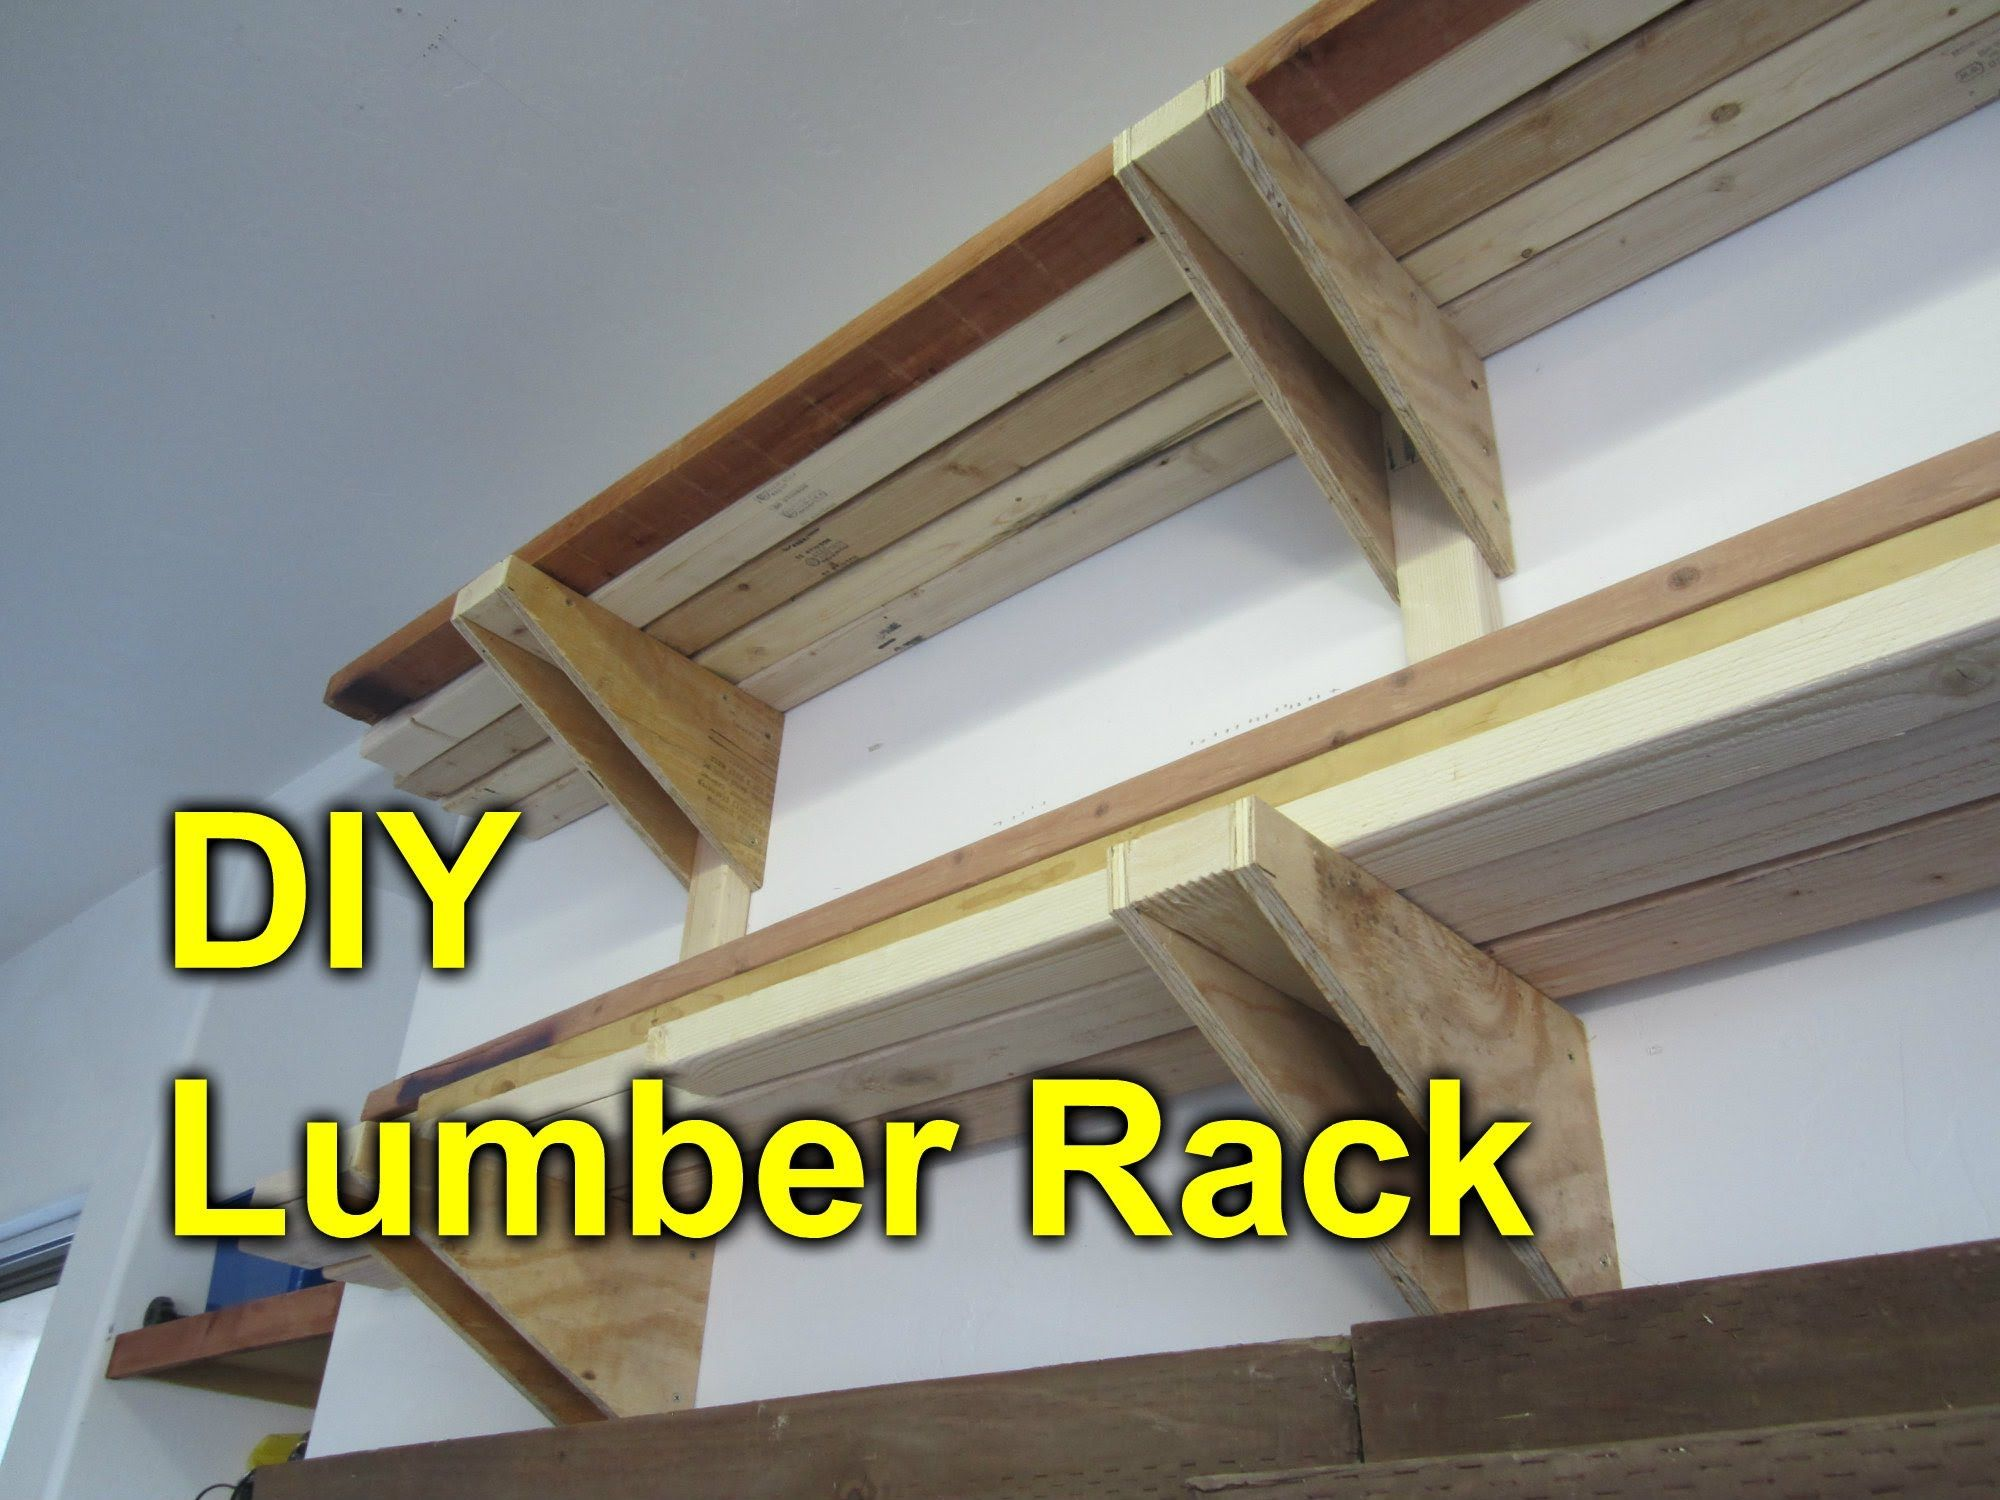 Garage Lumber Rack Easy Cheap Diy Project Lumber Rack Wood Storage Rack Lumber Storage Rack